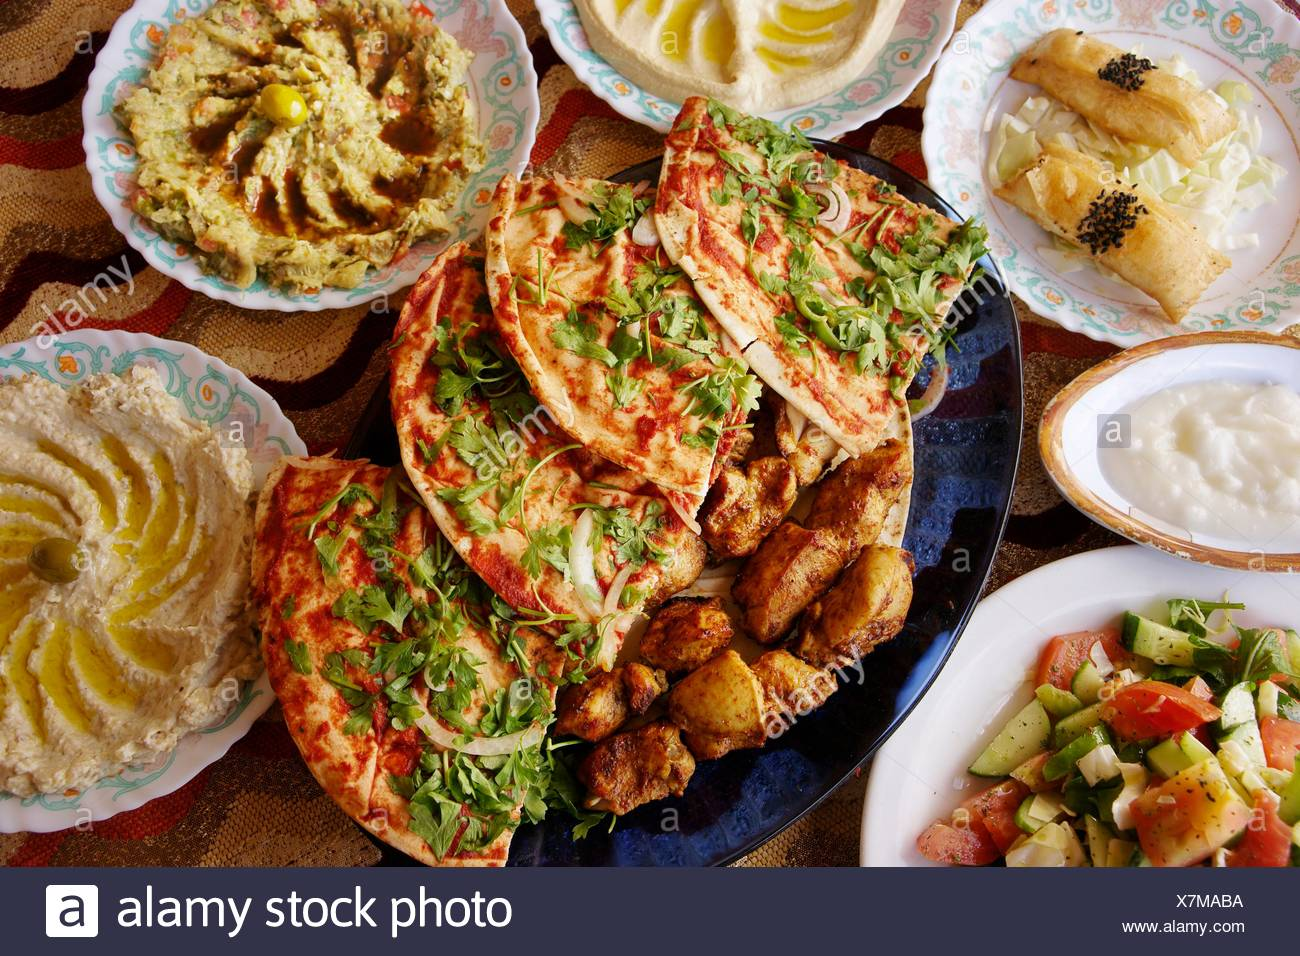 Food: different ´meze´ salads, ´hummus´ and more, with chiken ´kebab´ grill and bread, ´pizza´ style, Hama, Syria Stock Photo